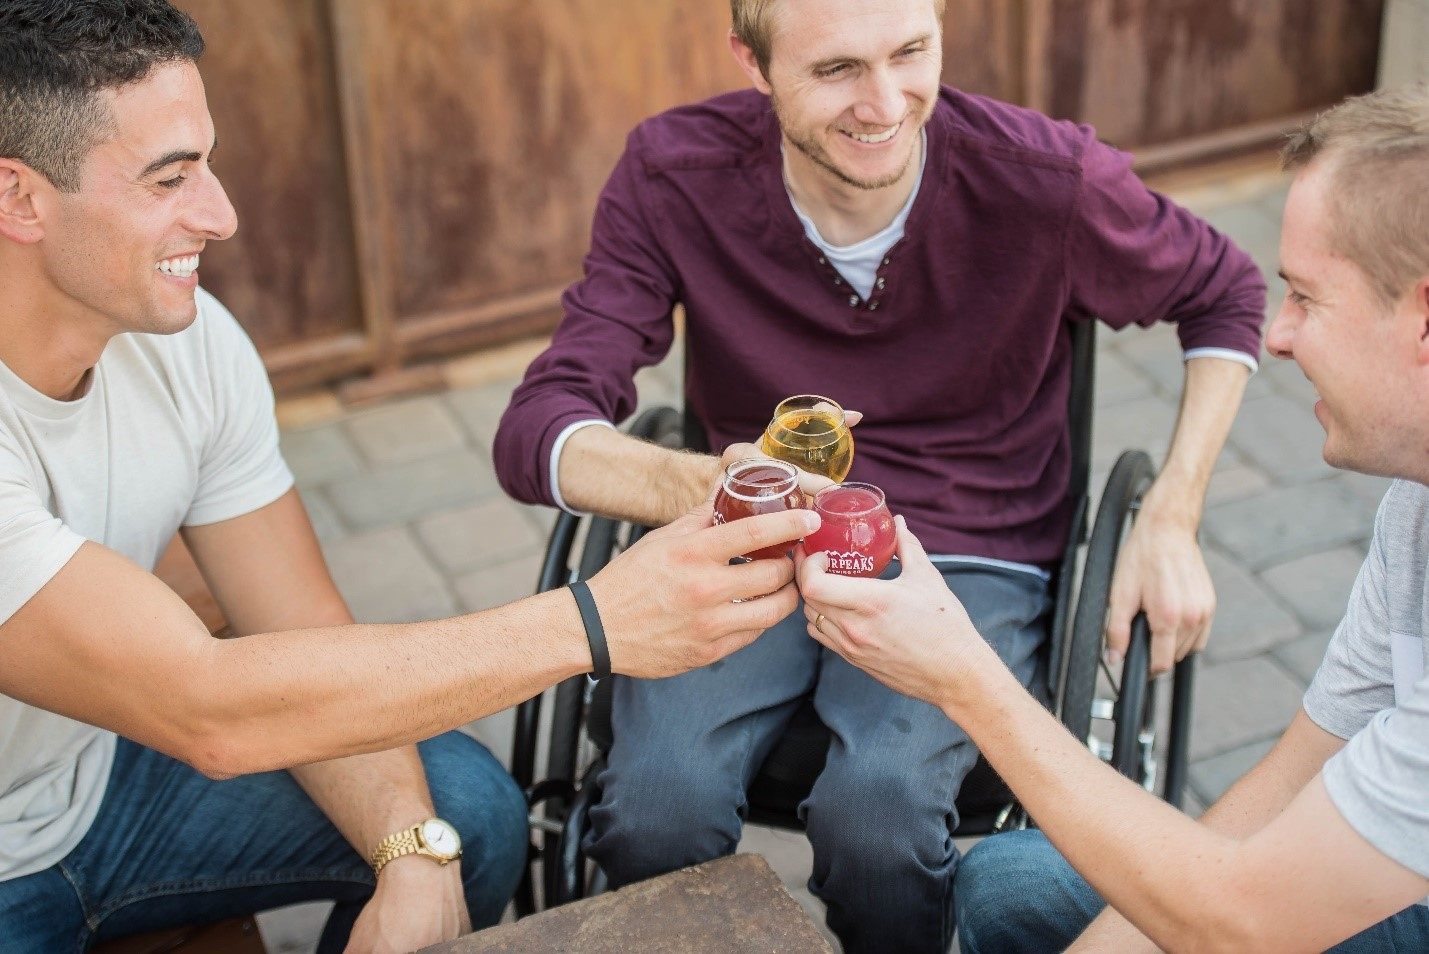 Wheelchair Community: 3 Places To Look For Support